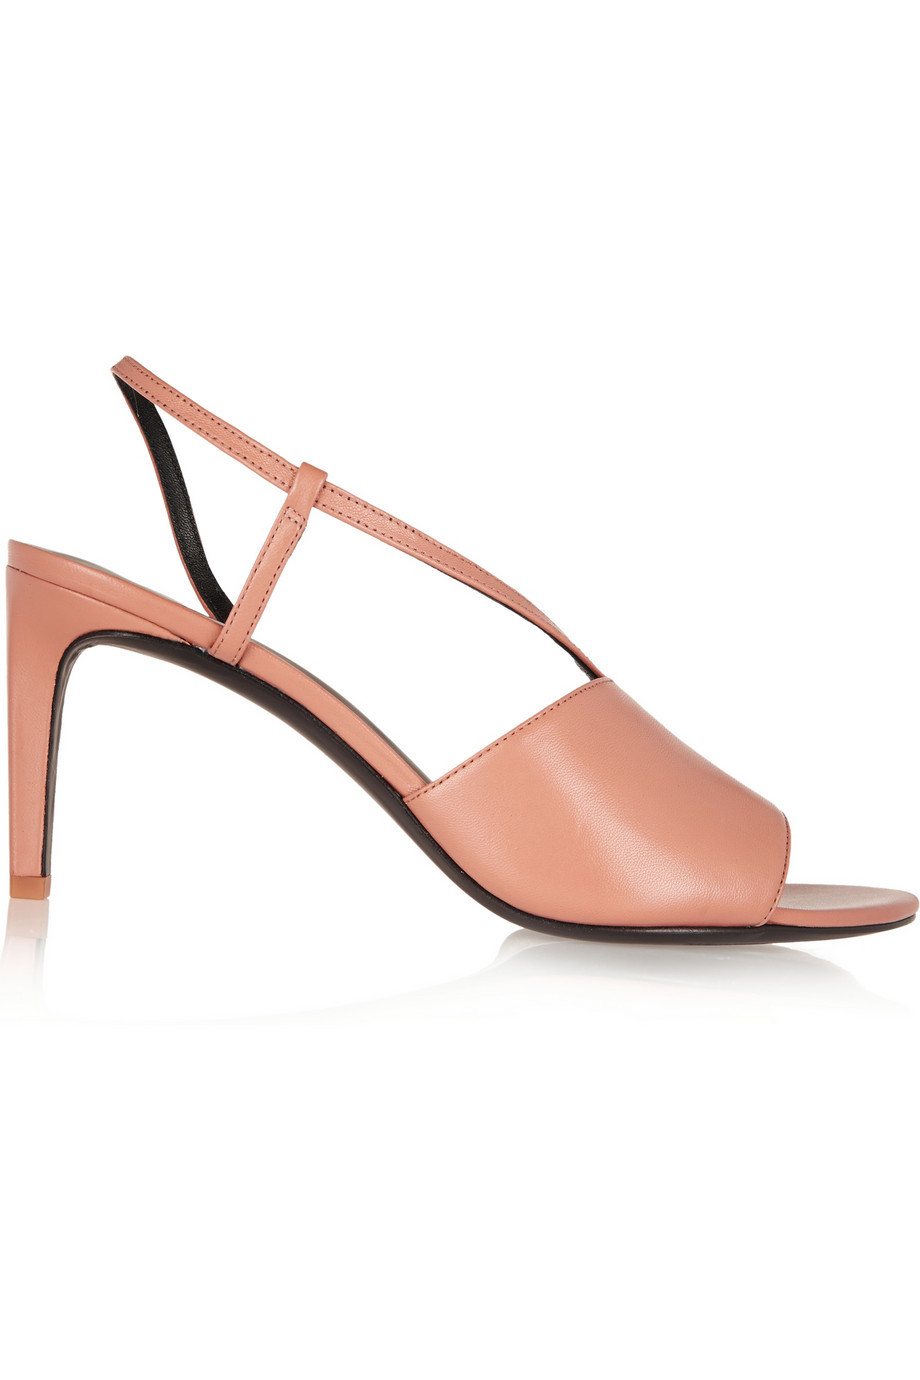 Marion Leather Sandals Neutral - occasions: occasion, creative work; material: leather; heel height: mid; heel: stiletto; toe: open toe/peeptoe; style: strappy; finish: plain; pattern: plain; predominant colour: dusky pink; season: s/s 2016; wardrobe: highlight